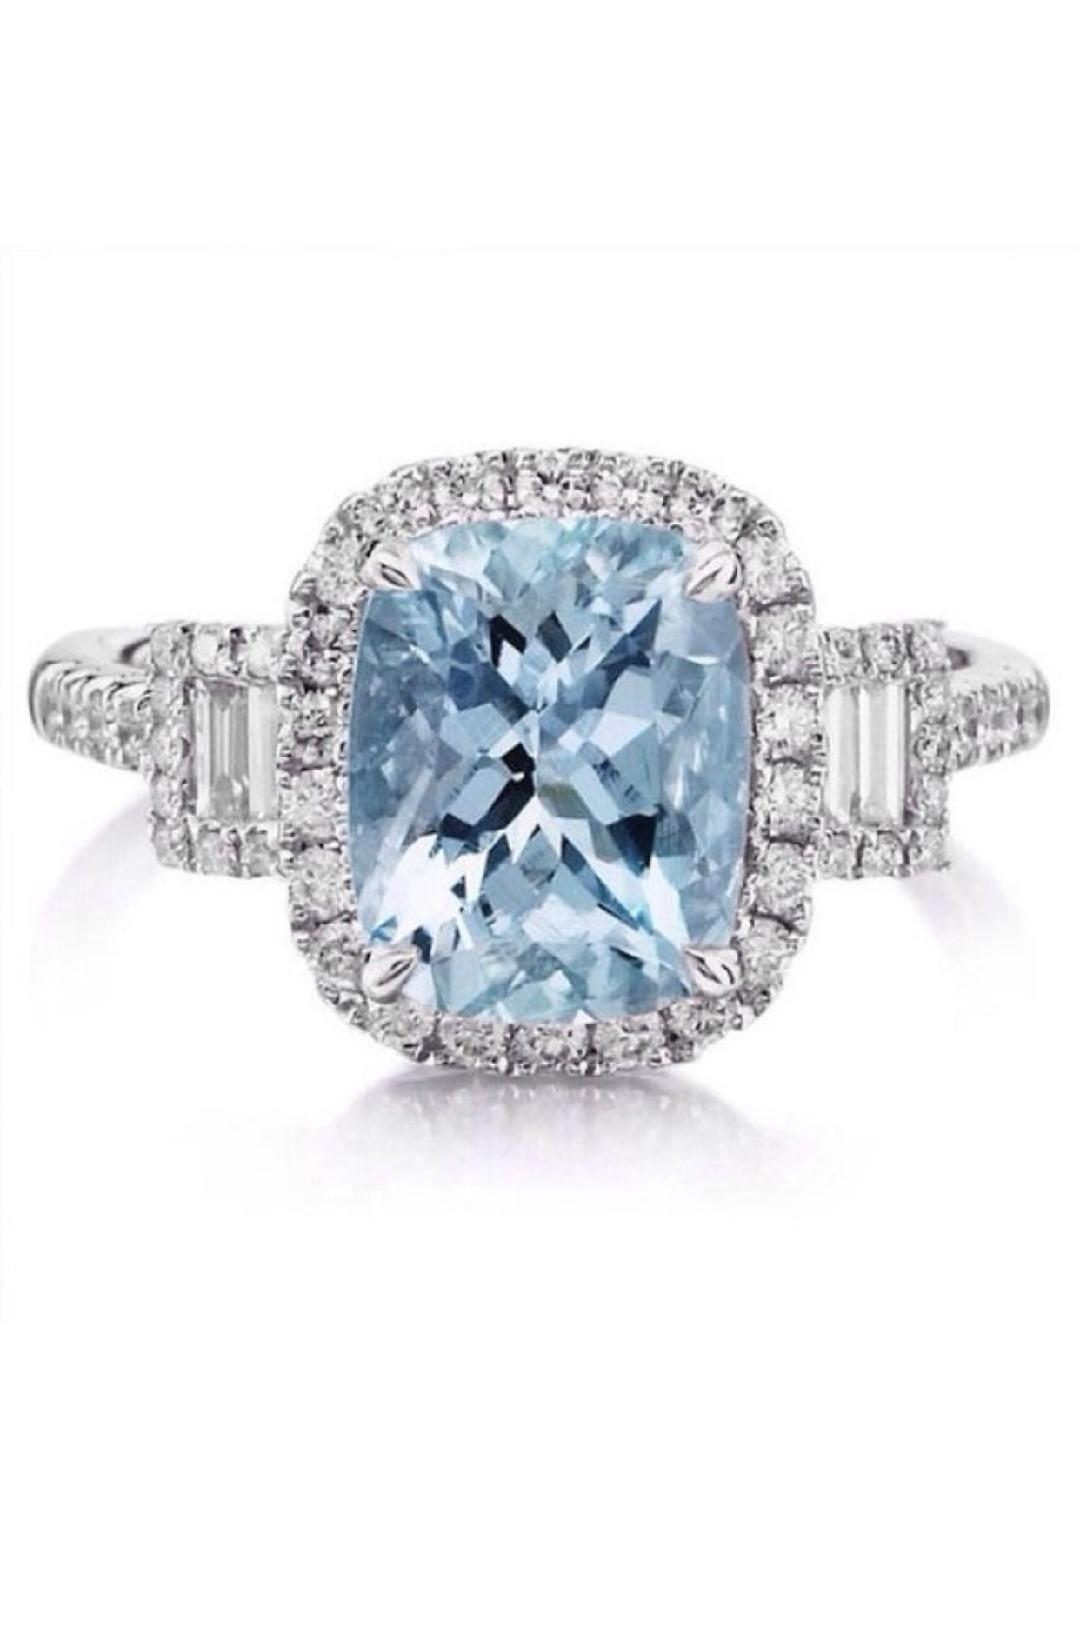 blue colored gems for the main stone enagement ring.jpg